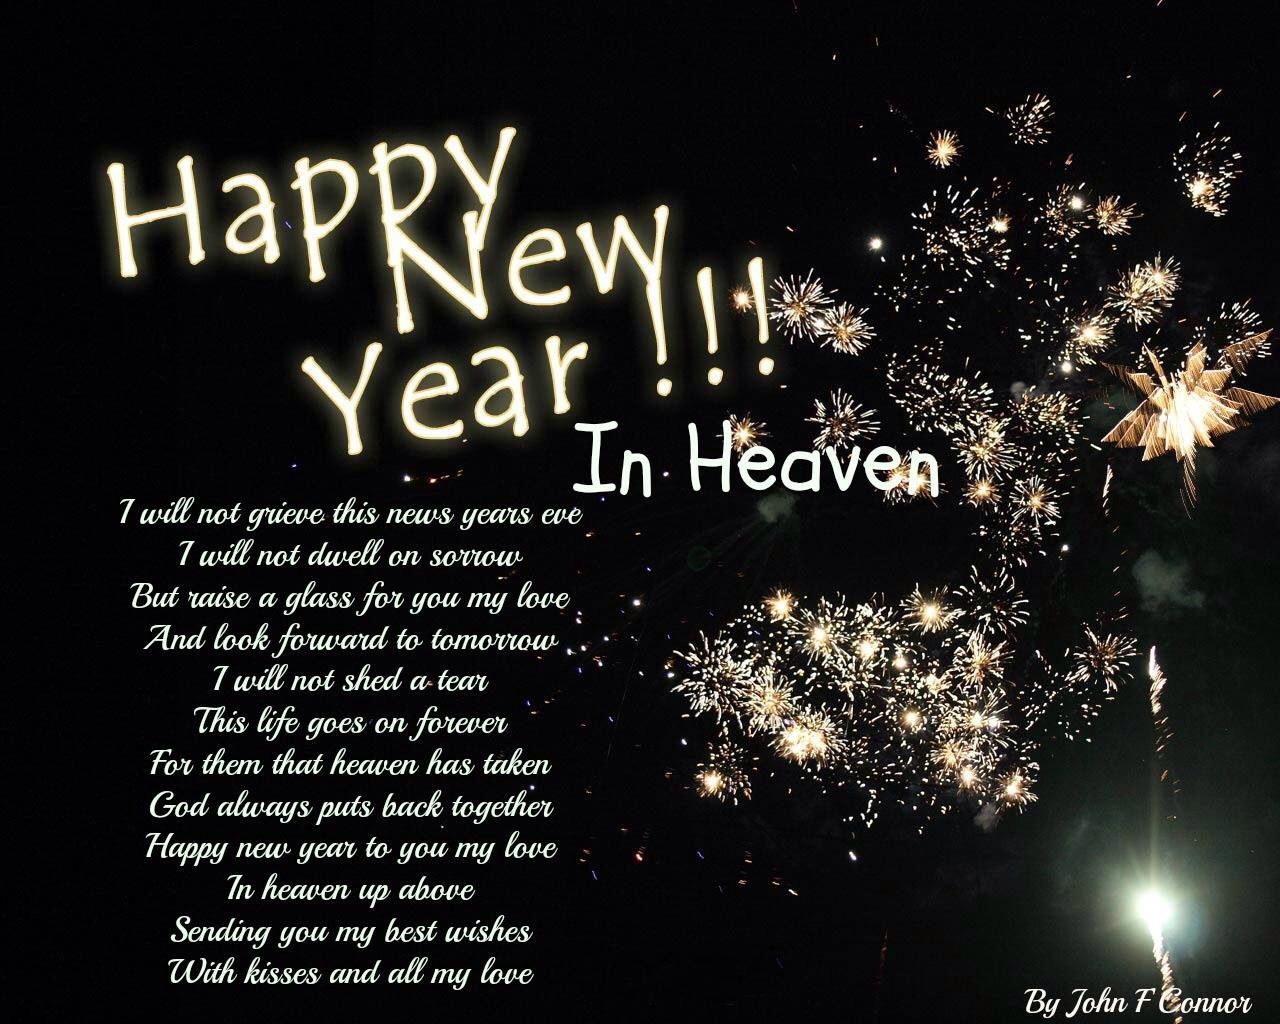 Happy New Years in Heaven Harry. I Miss you and l Love you